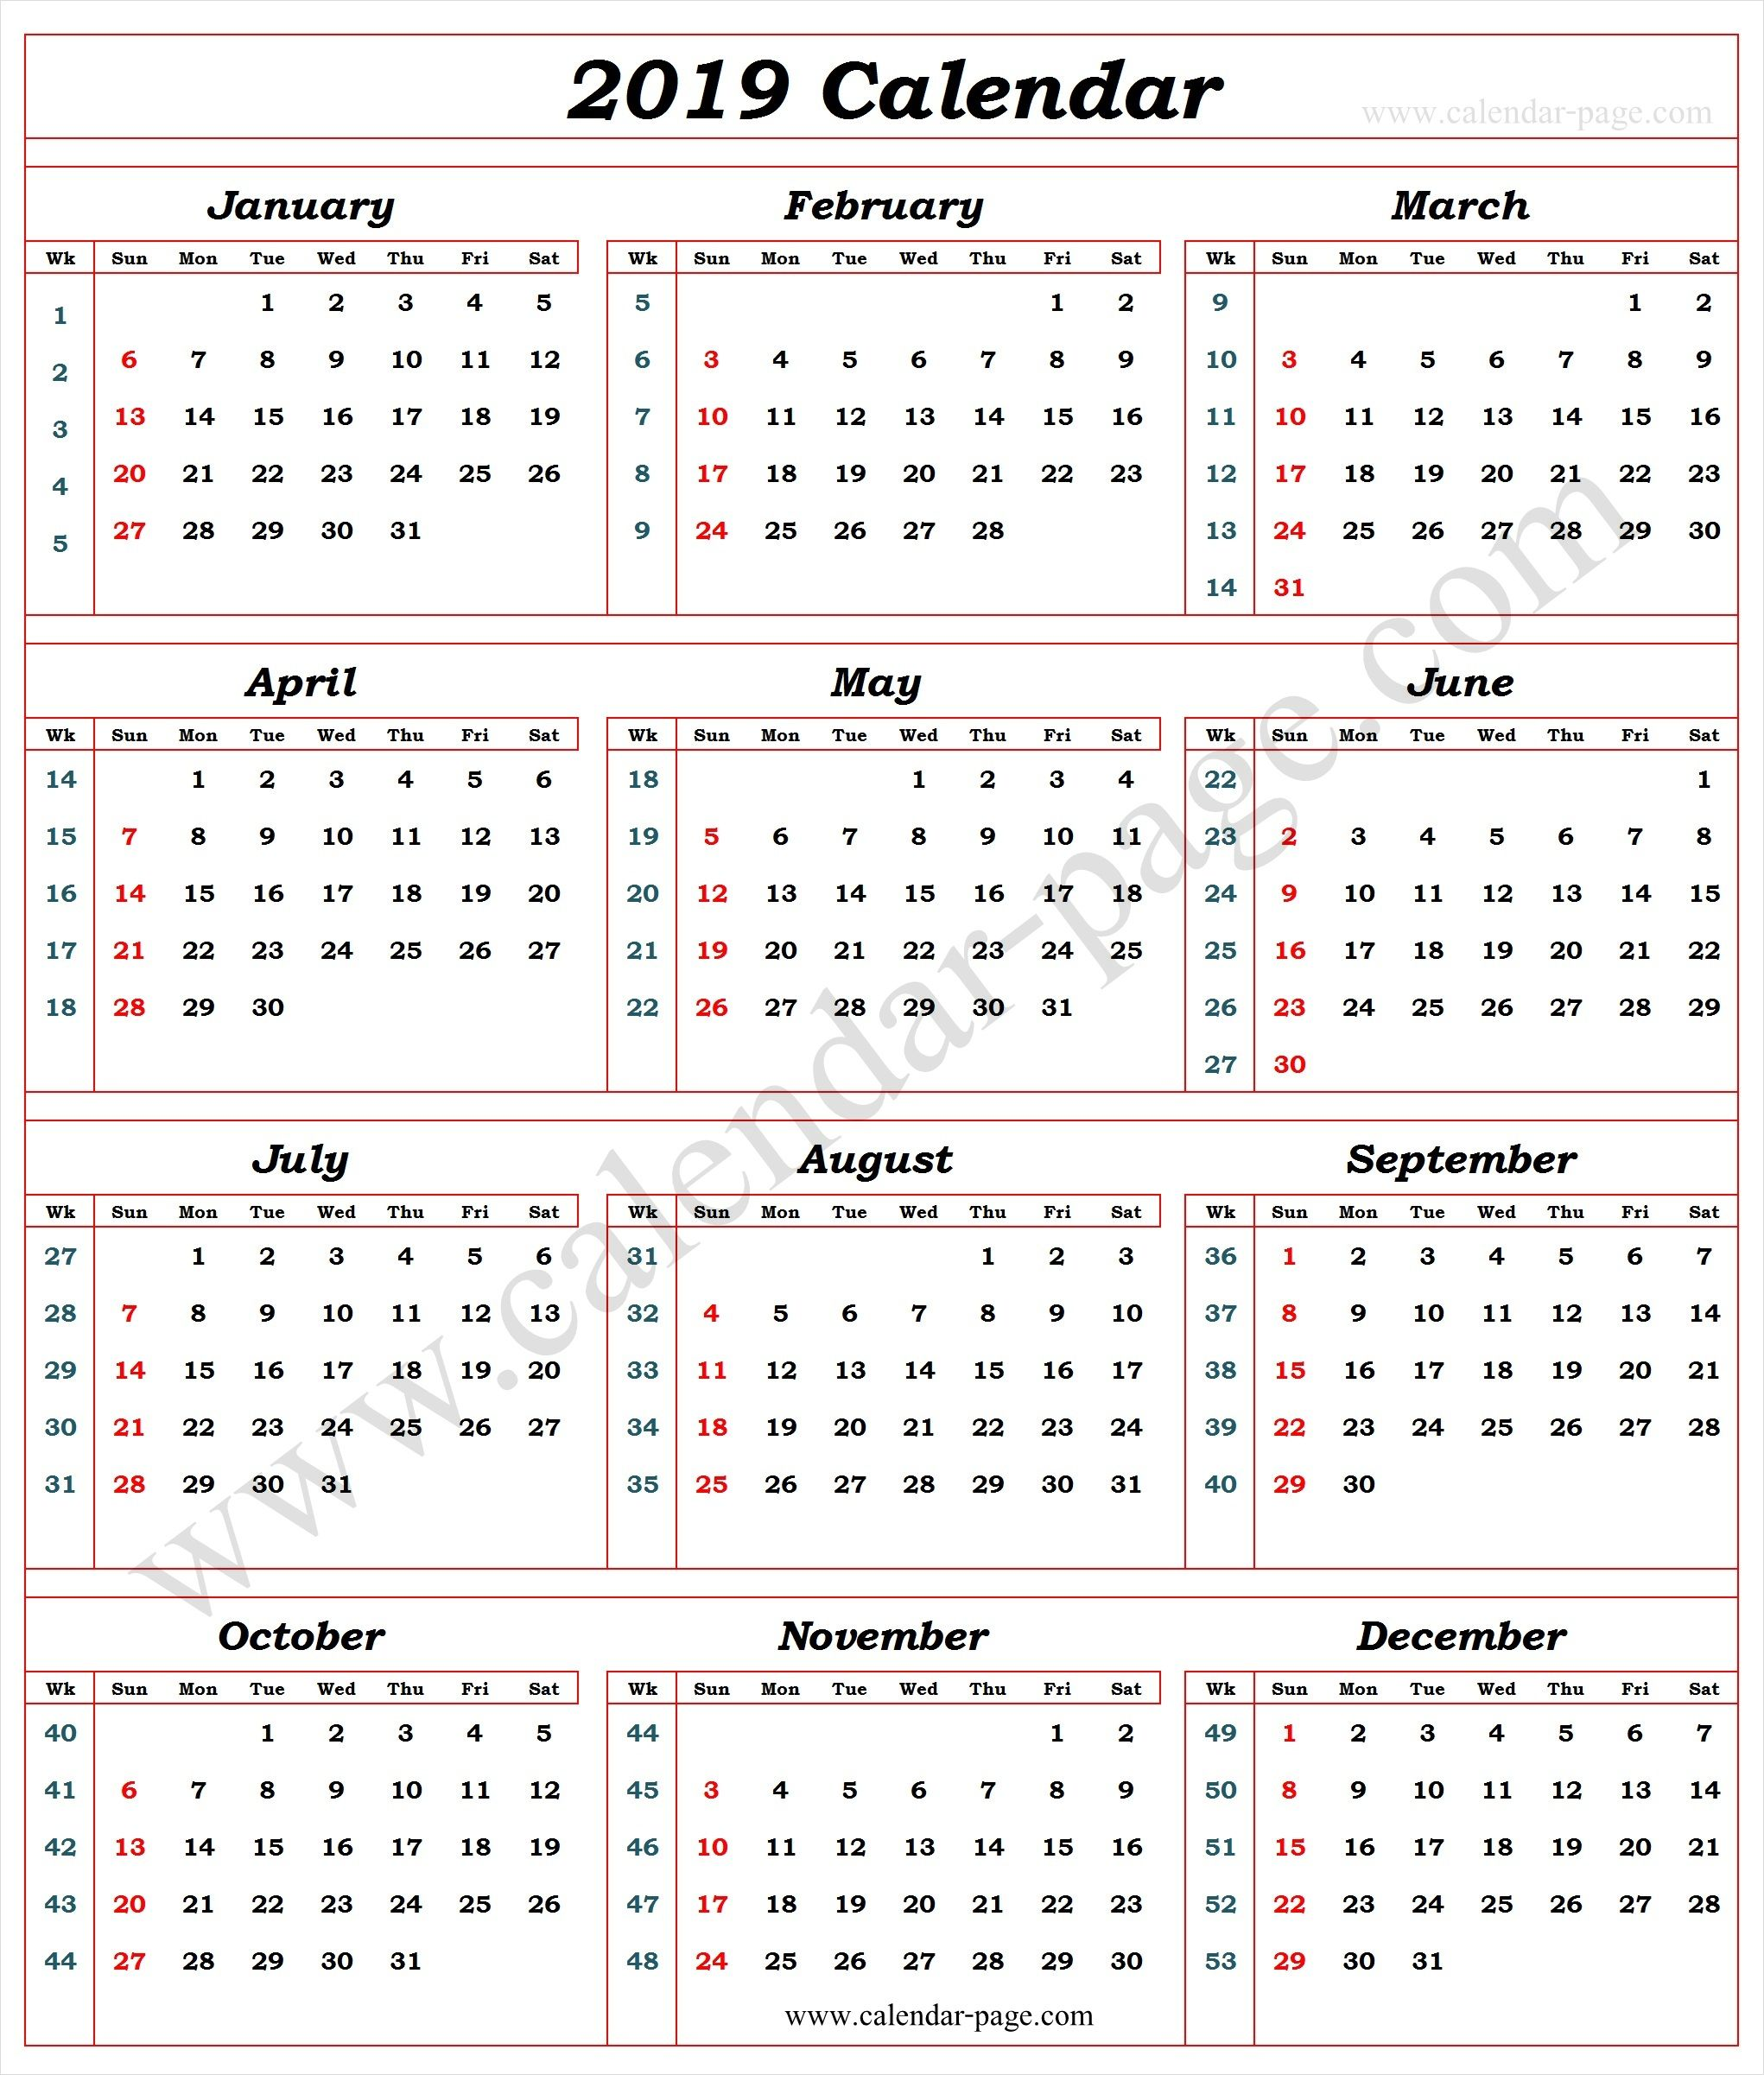 2019 Calendar Weeks Calendar 2019 With Week Numbers | 2019 Calendar Template